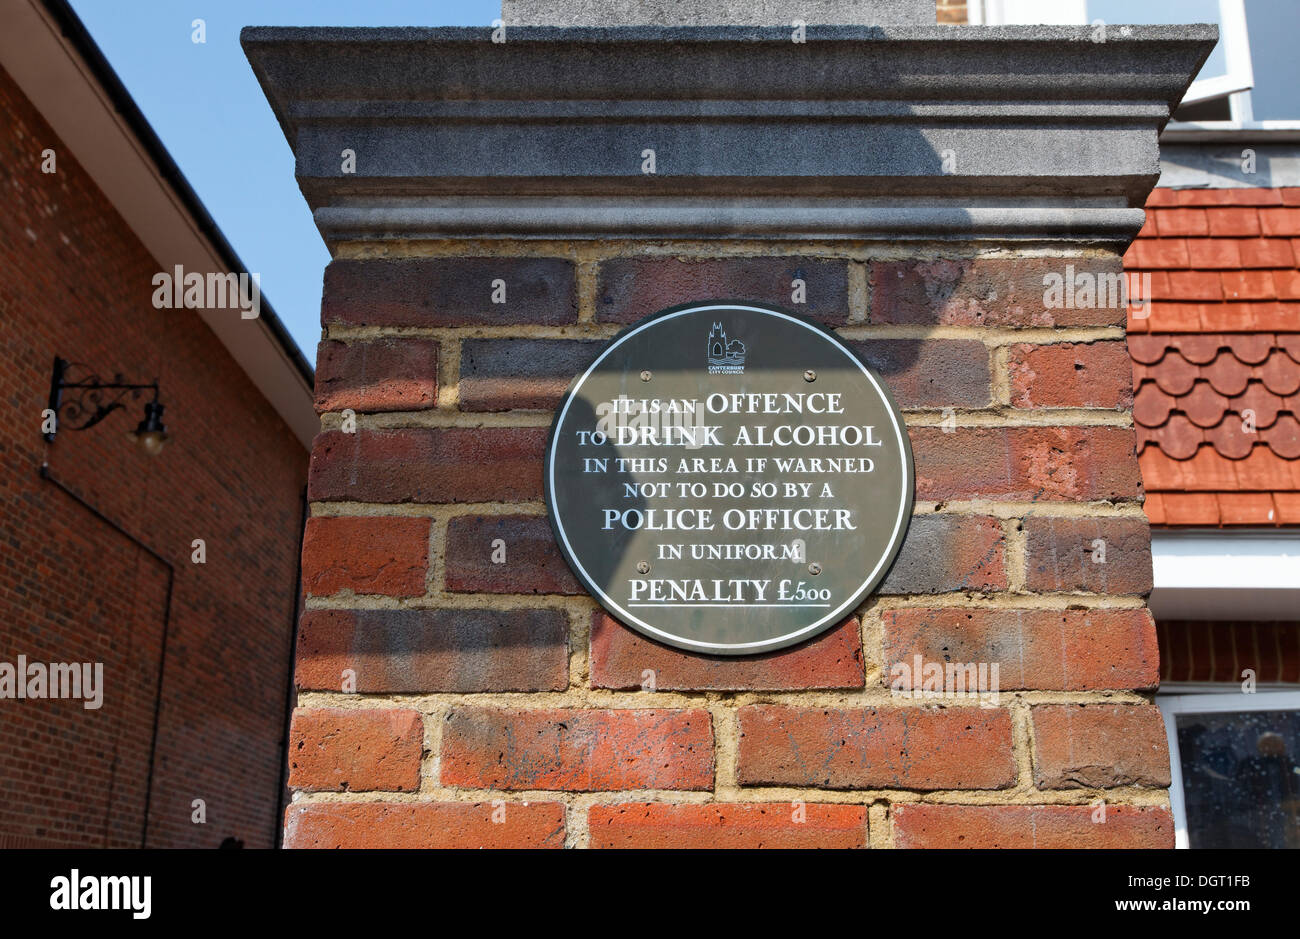 Sign prohibiting the consumption of alcohol in the area, Canterbury Railway Station, South East England - Stock Image